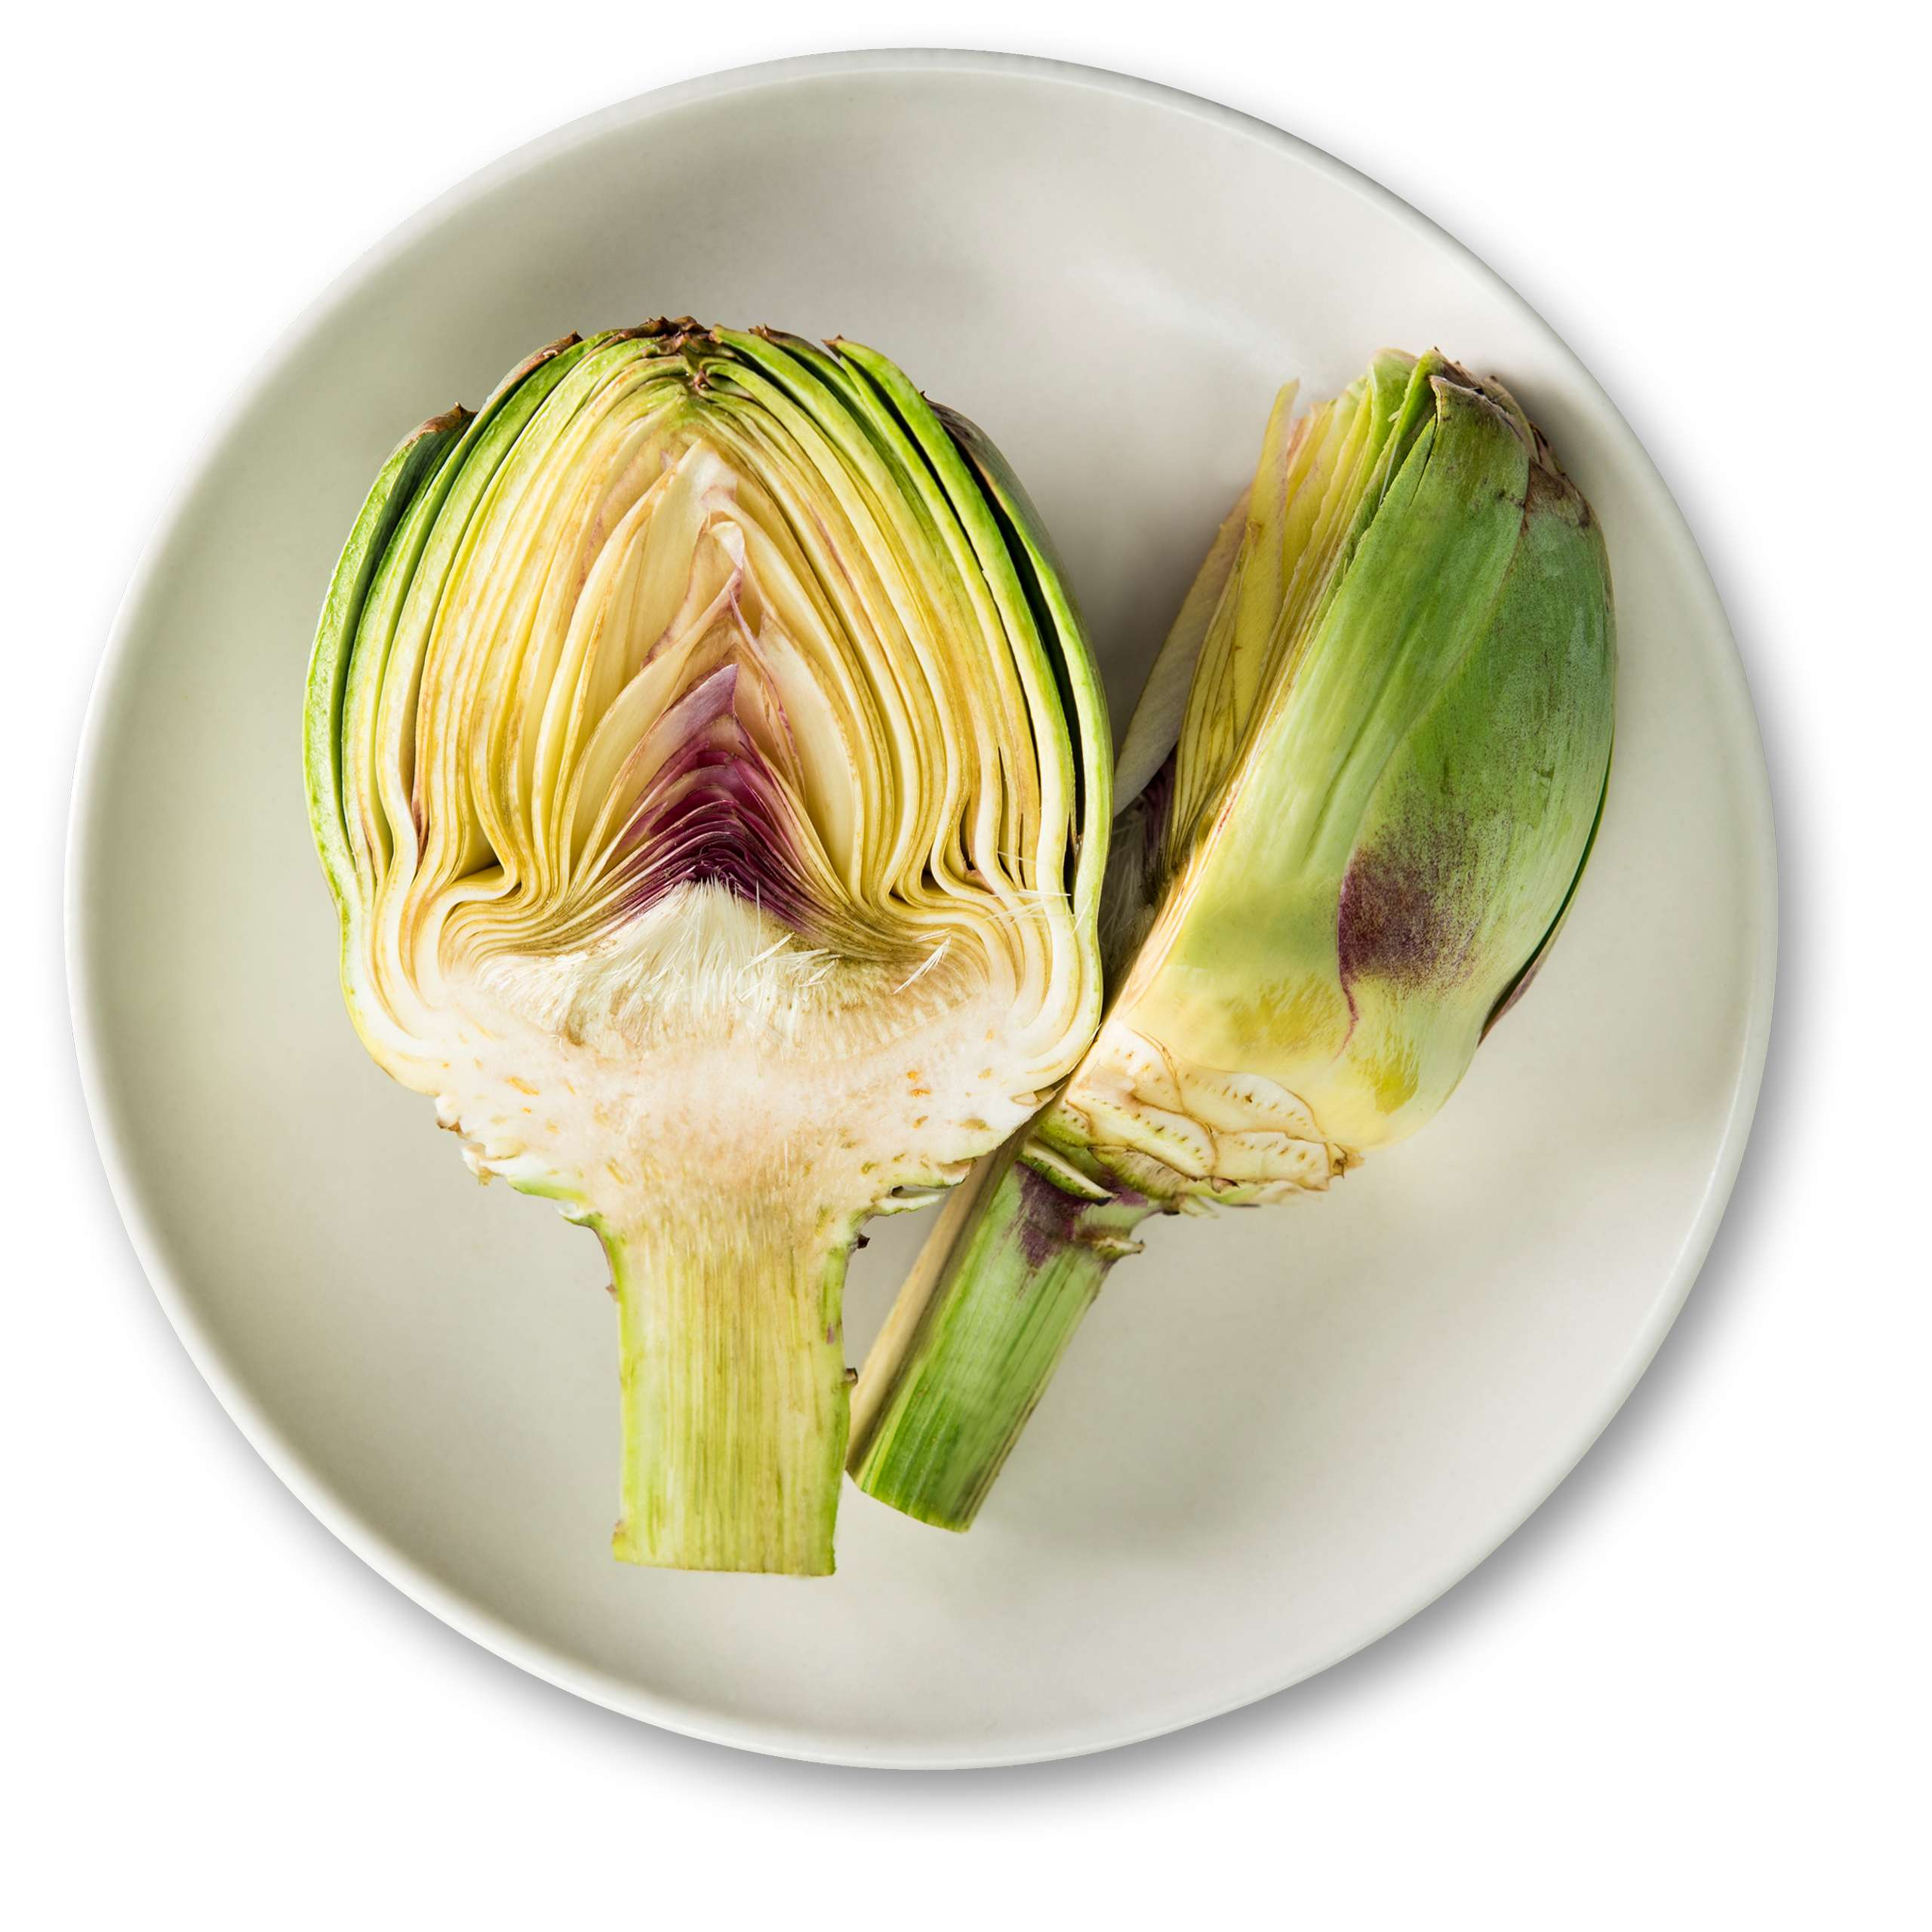 Hero_Vegetables_Artichokes.jpg